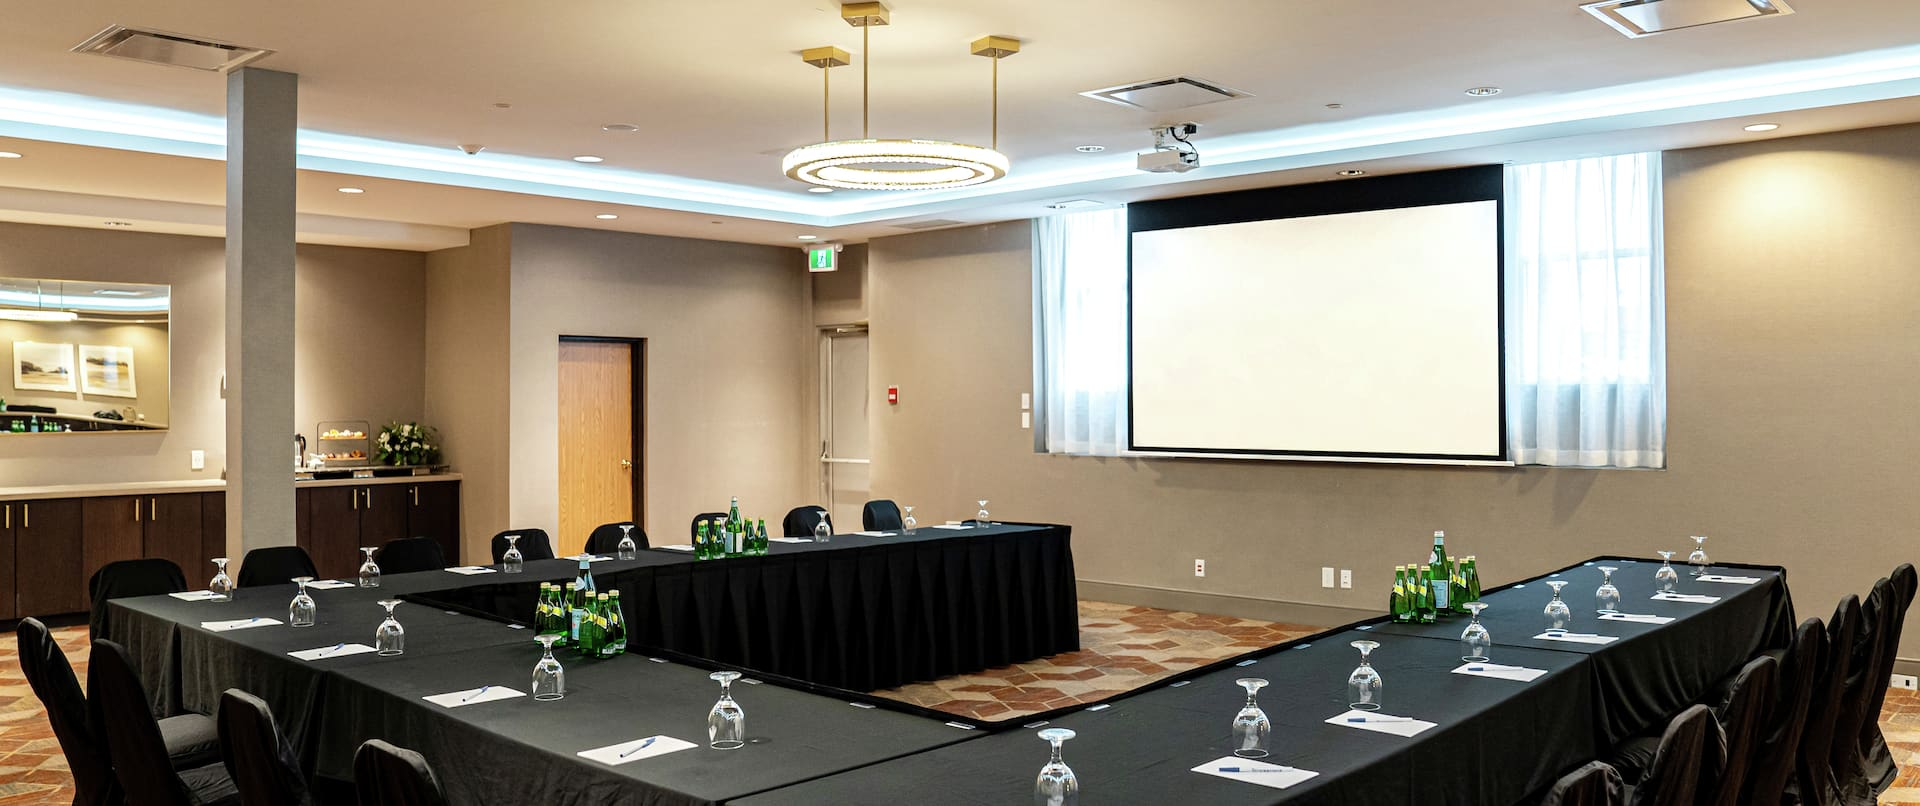 a u-shaped meeting table and a presentation screen in a room